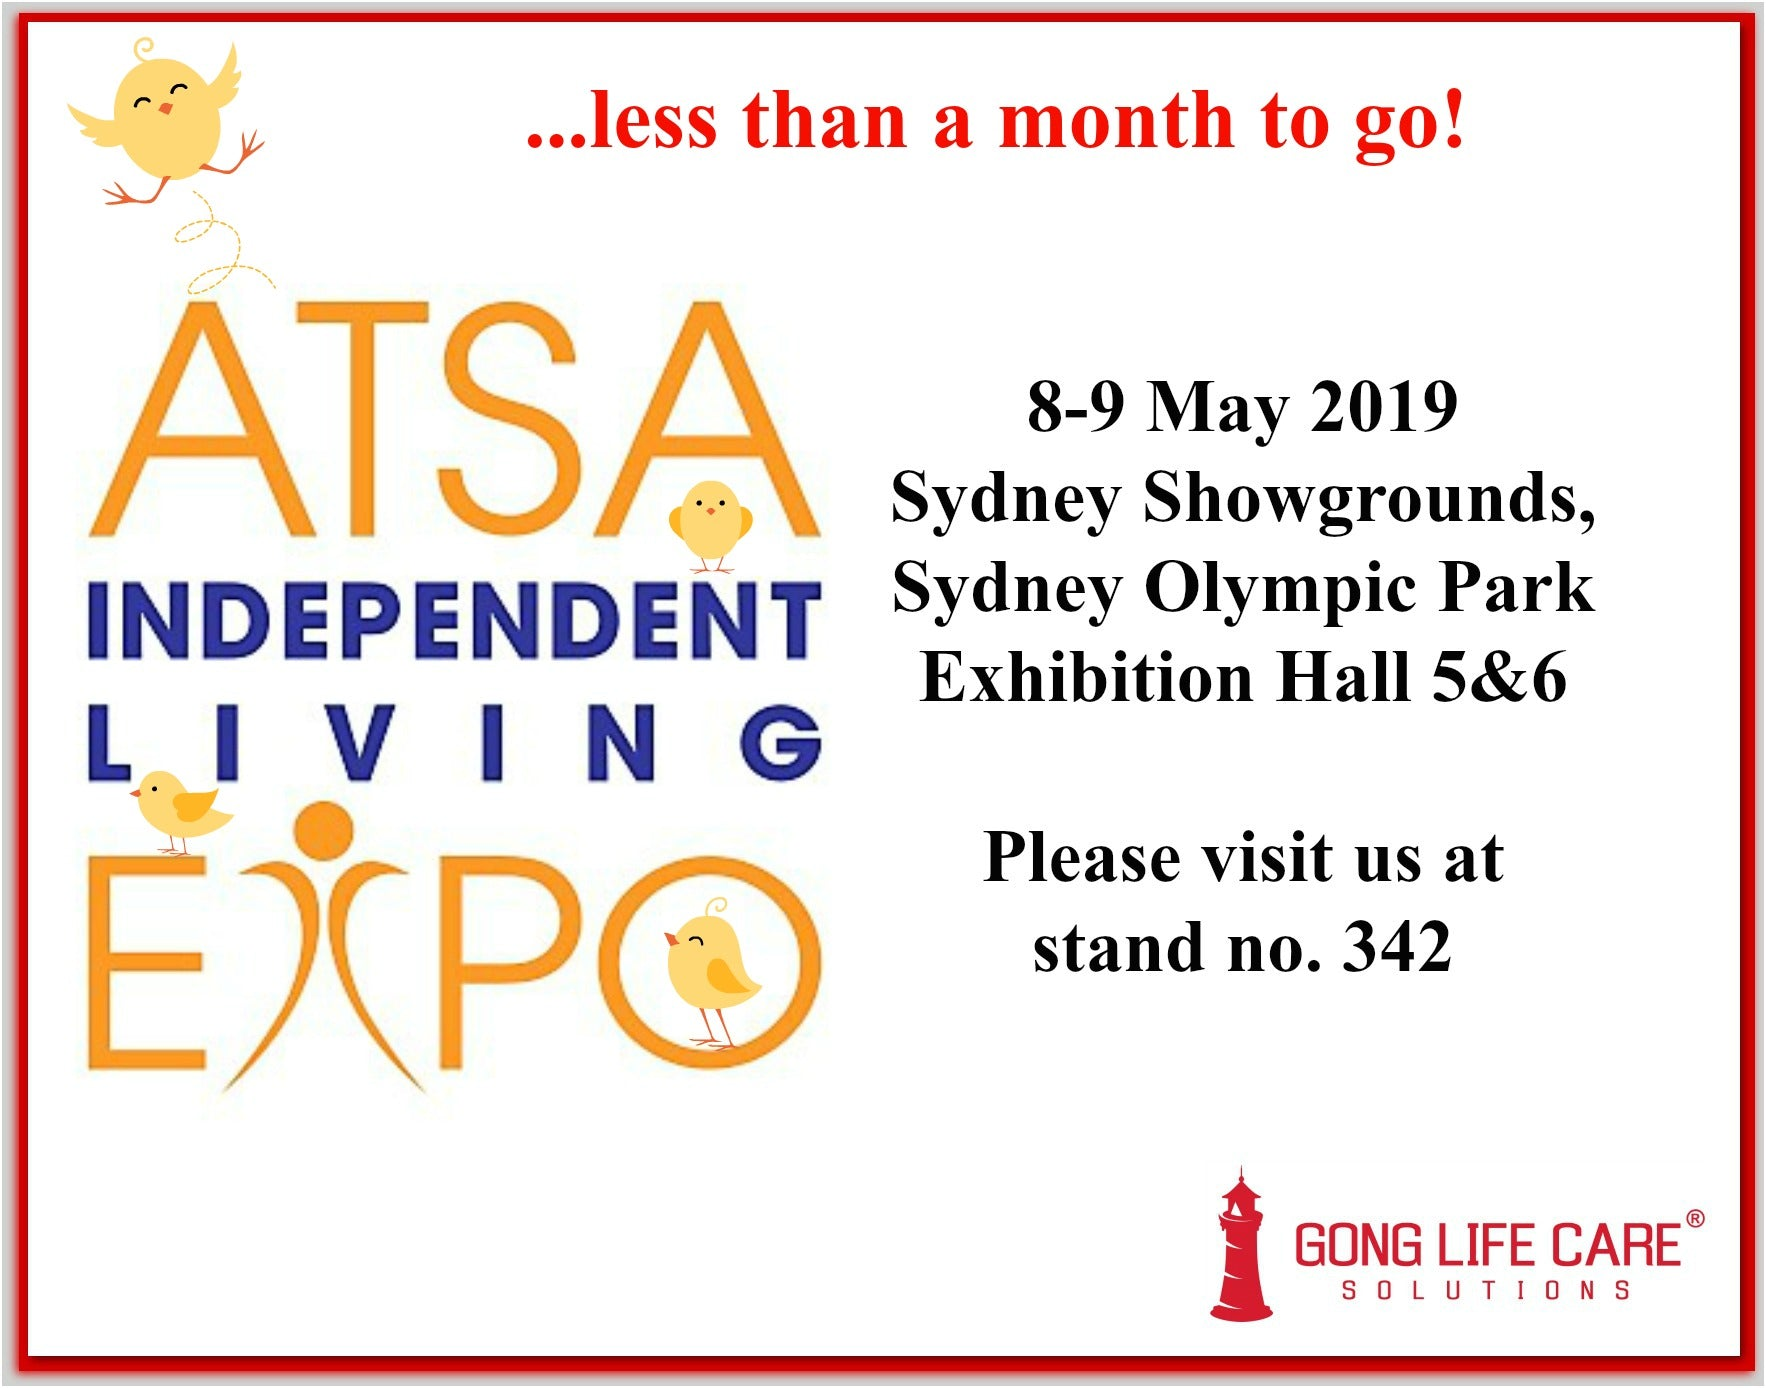 Gong Life Care Solutions at ATSA Expo